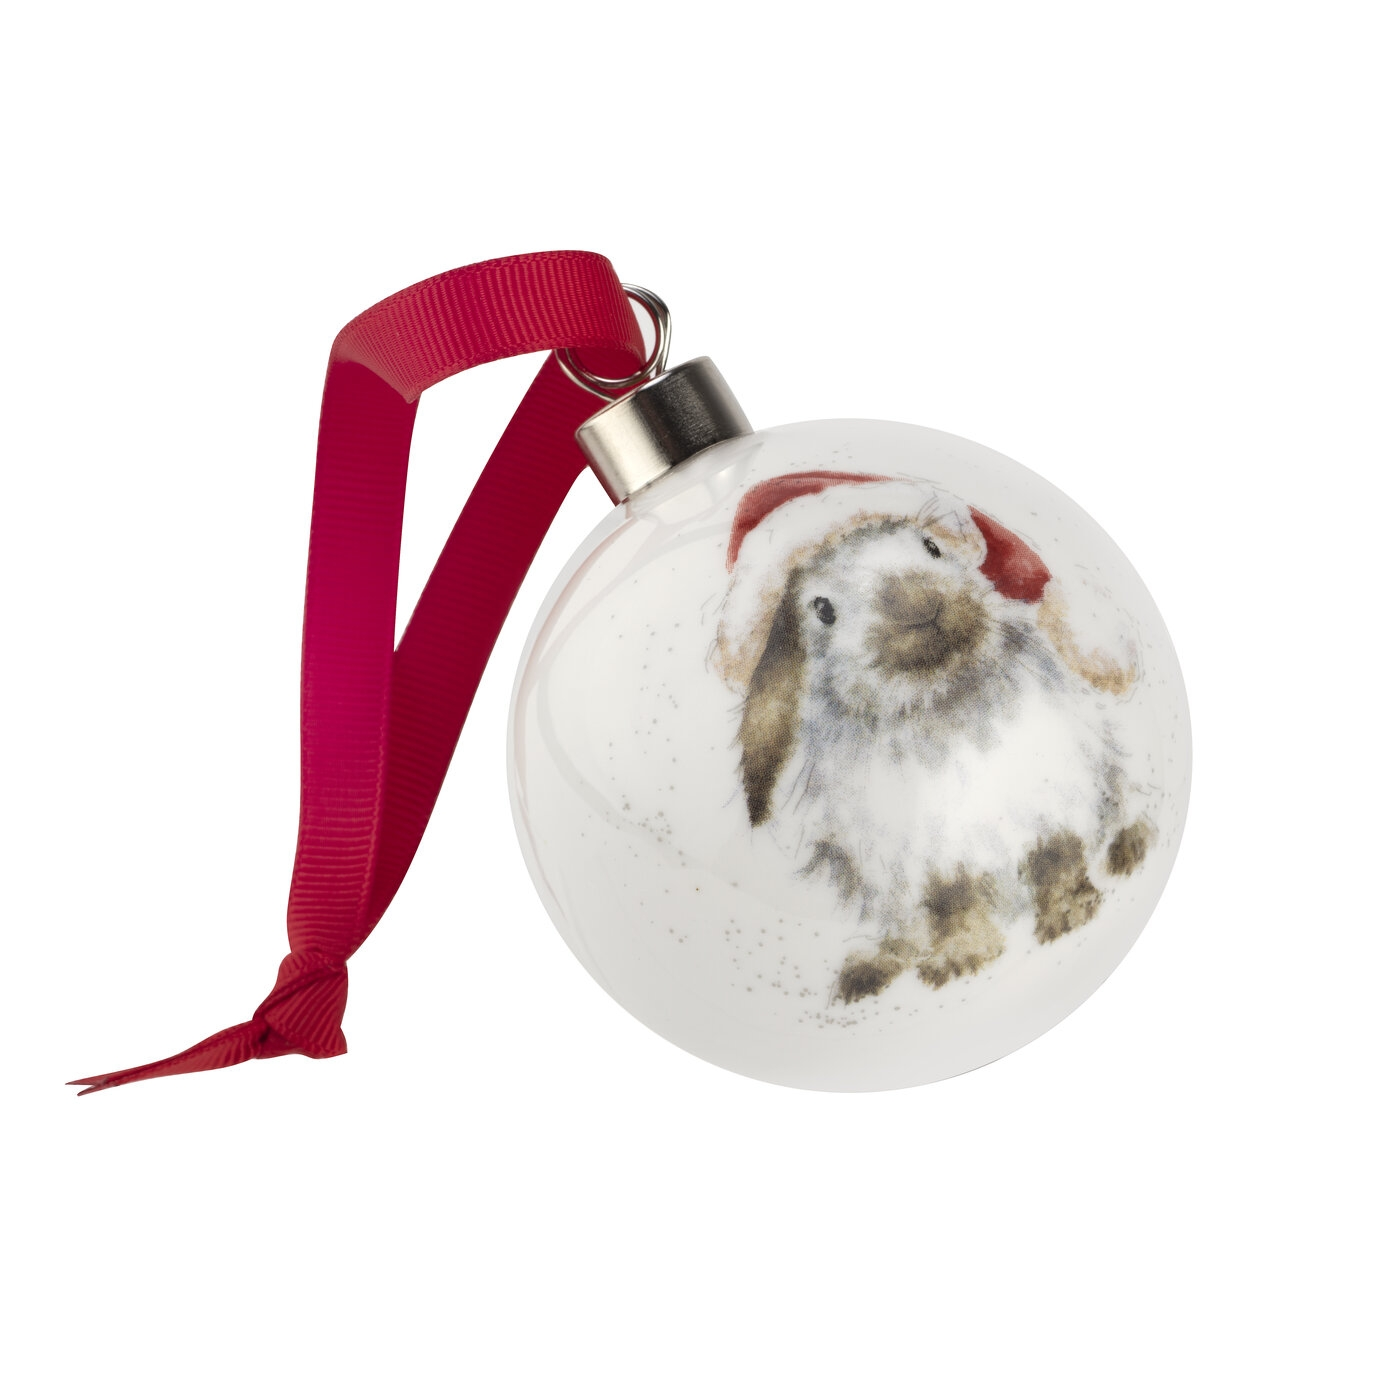 Royal Worcester Wrendale Designs Ho Ho Ho Bauble (Rabbit) image number 0